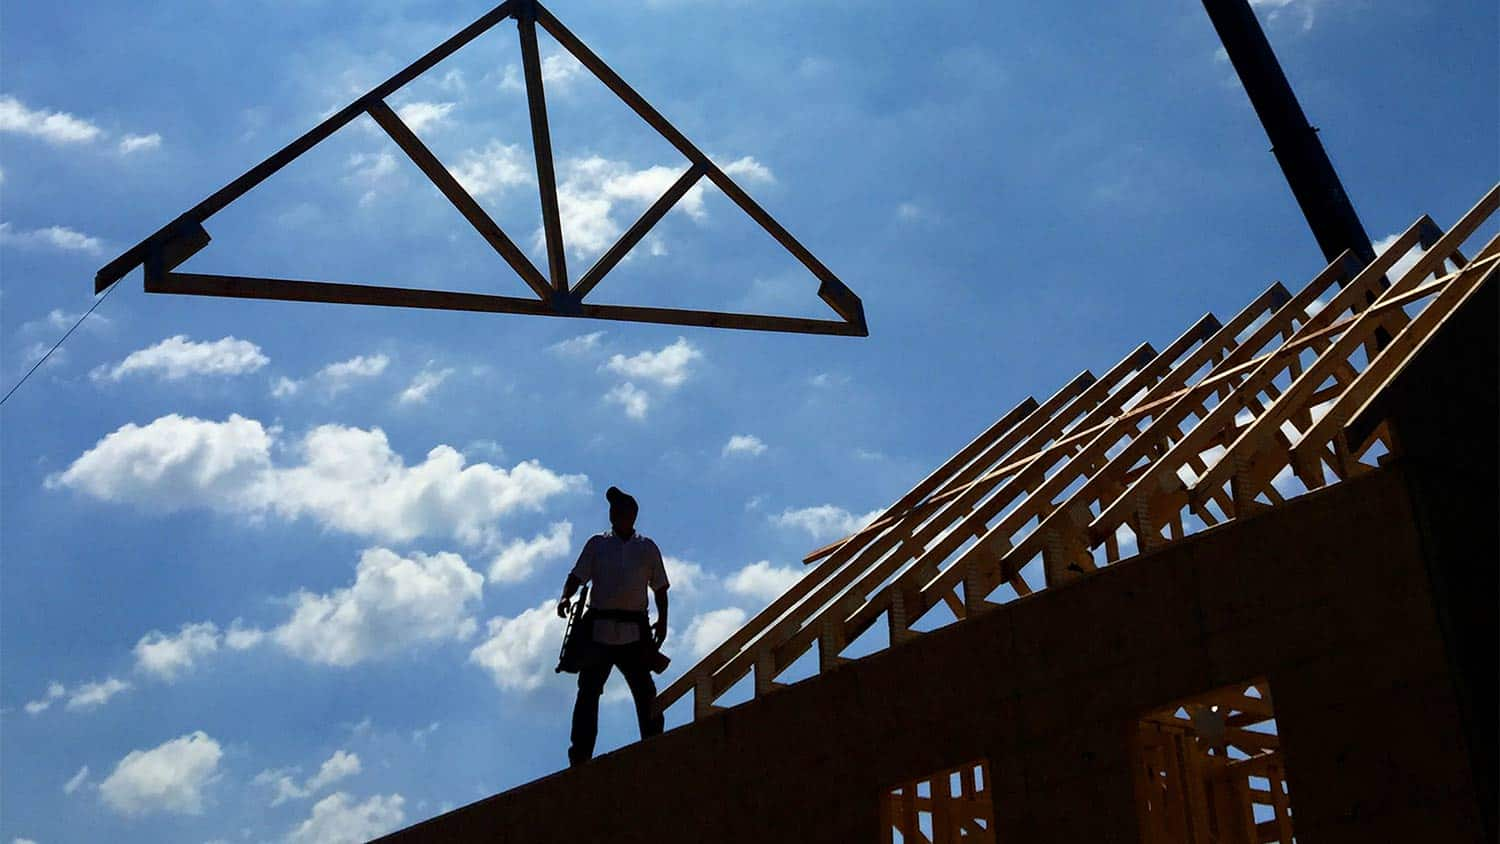 Silhouette of a man on a construction site